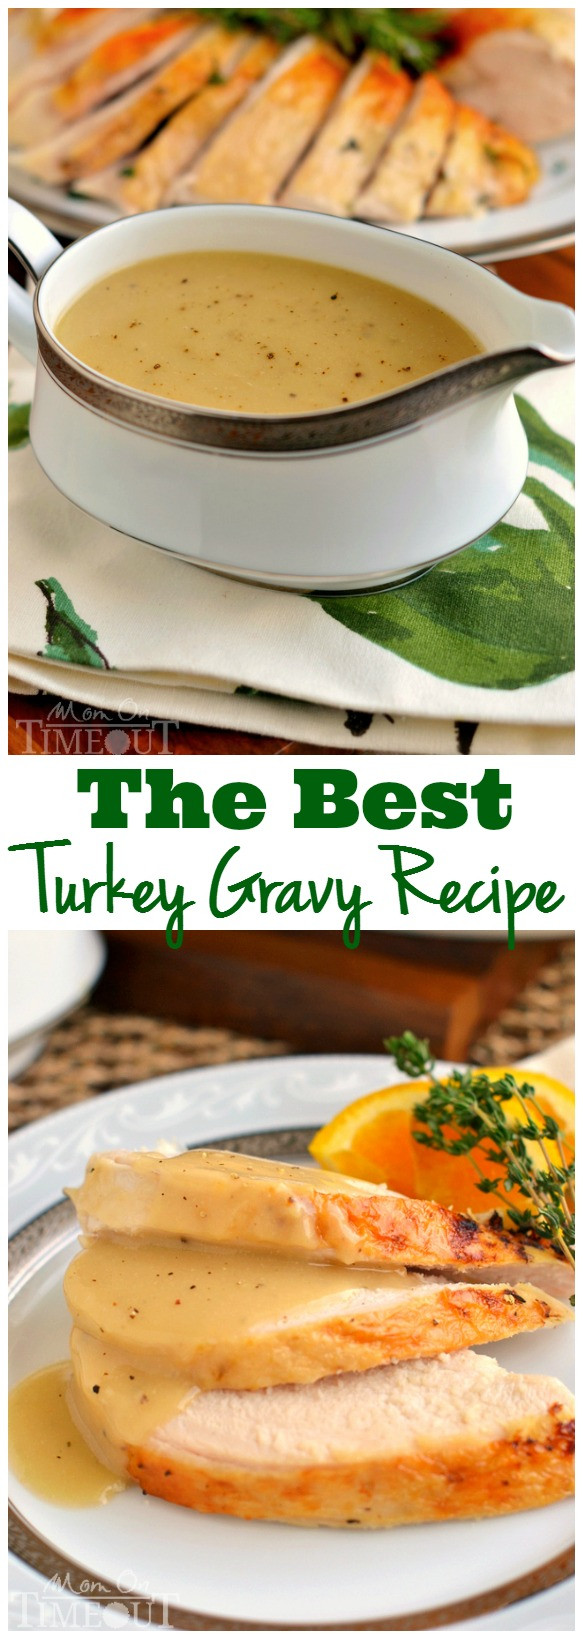 Thanksgiving Gravy Recipe  Rich And Silky Turkey Gravy Recipe — Dishmaps